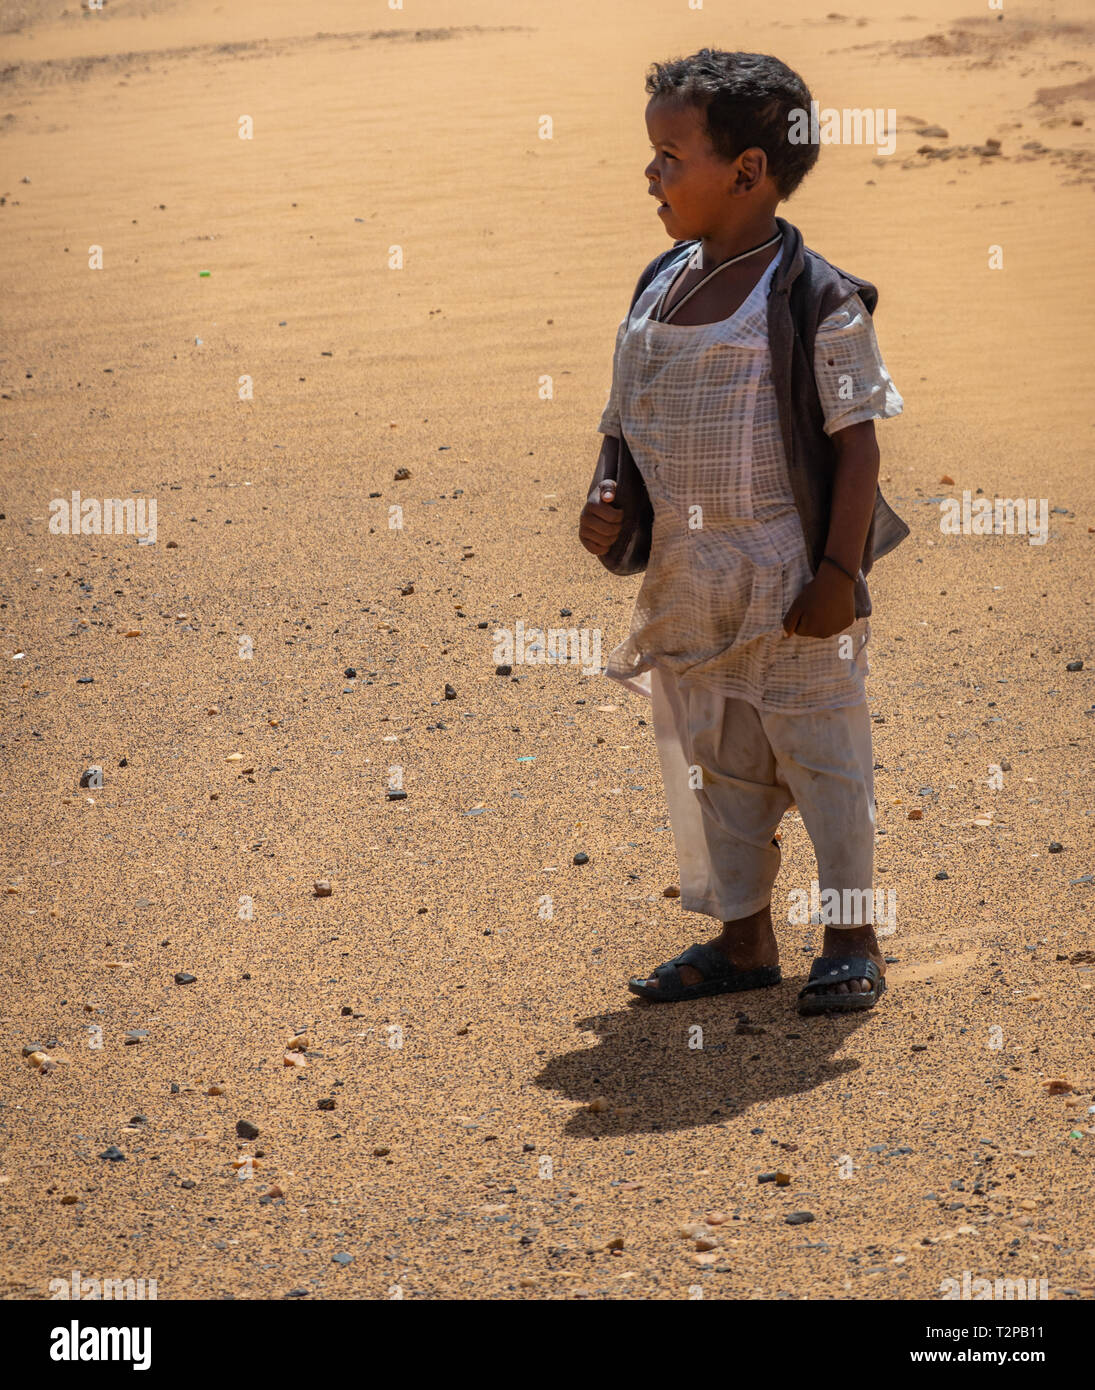 Kerma, Sudan, February 7., 2019: Small colored Sudanese boy with black hair, white pants, white shirt and dark blue vest looking sideways over the des - Stock Image